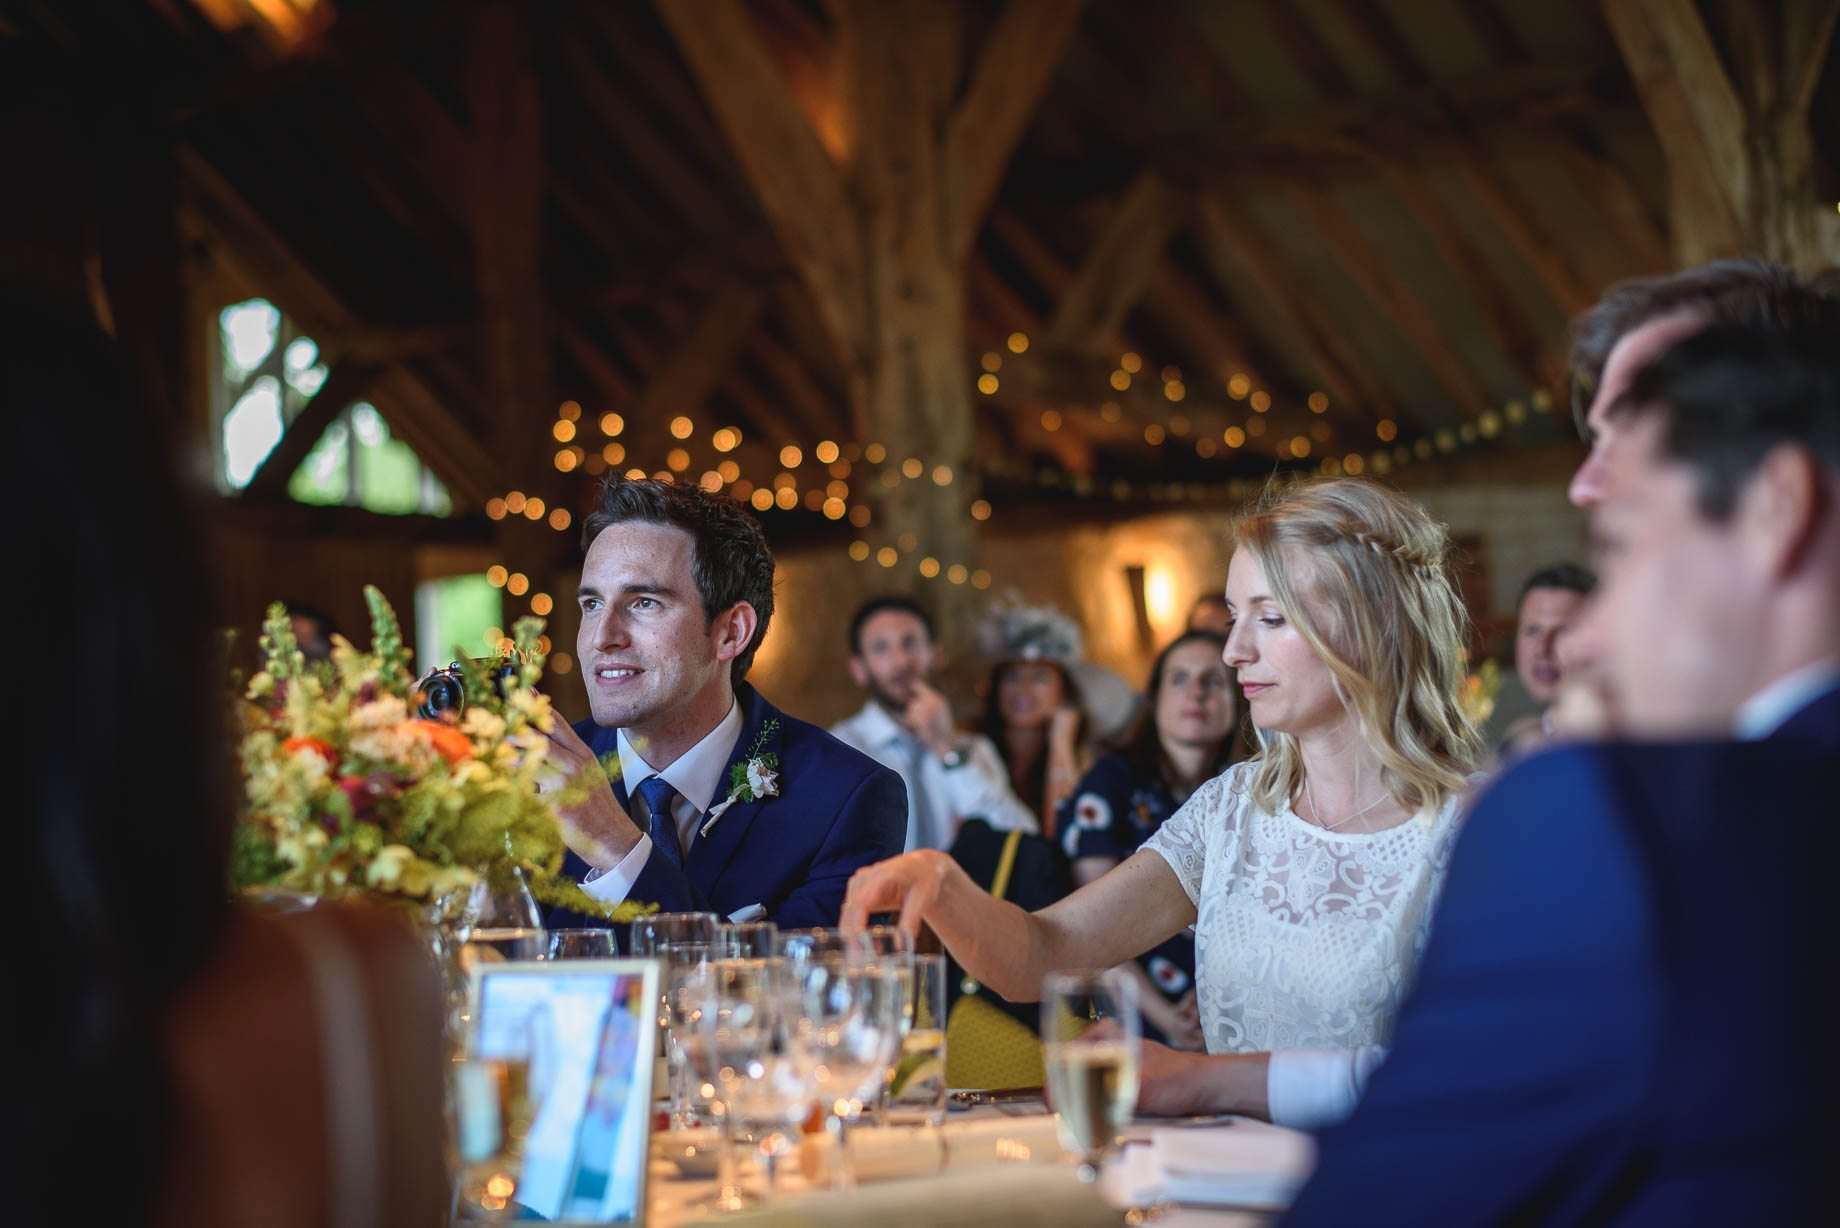 Bury Court Barn wedding photography by Guy Collier - Jo and Jamie (108 of 160)